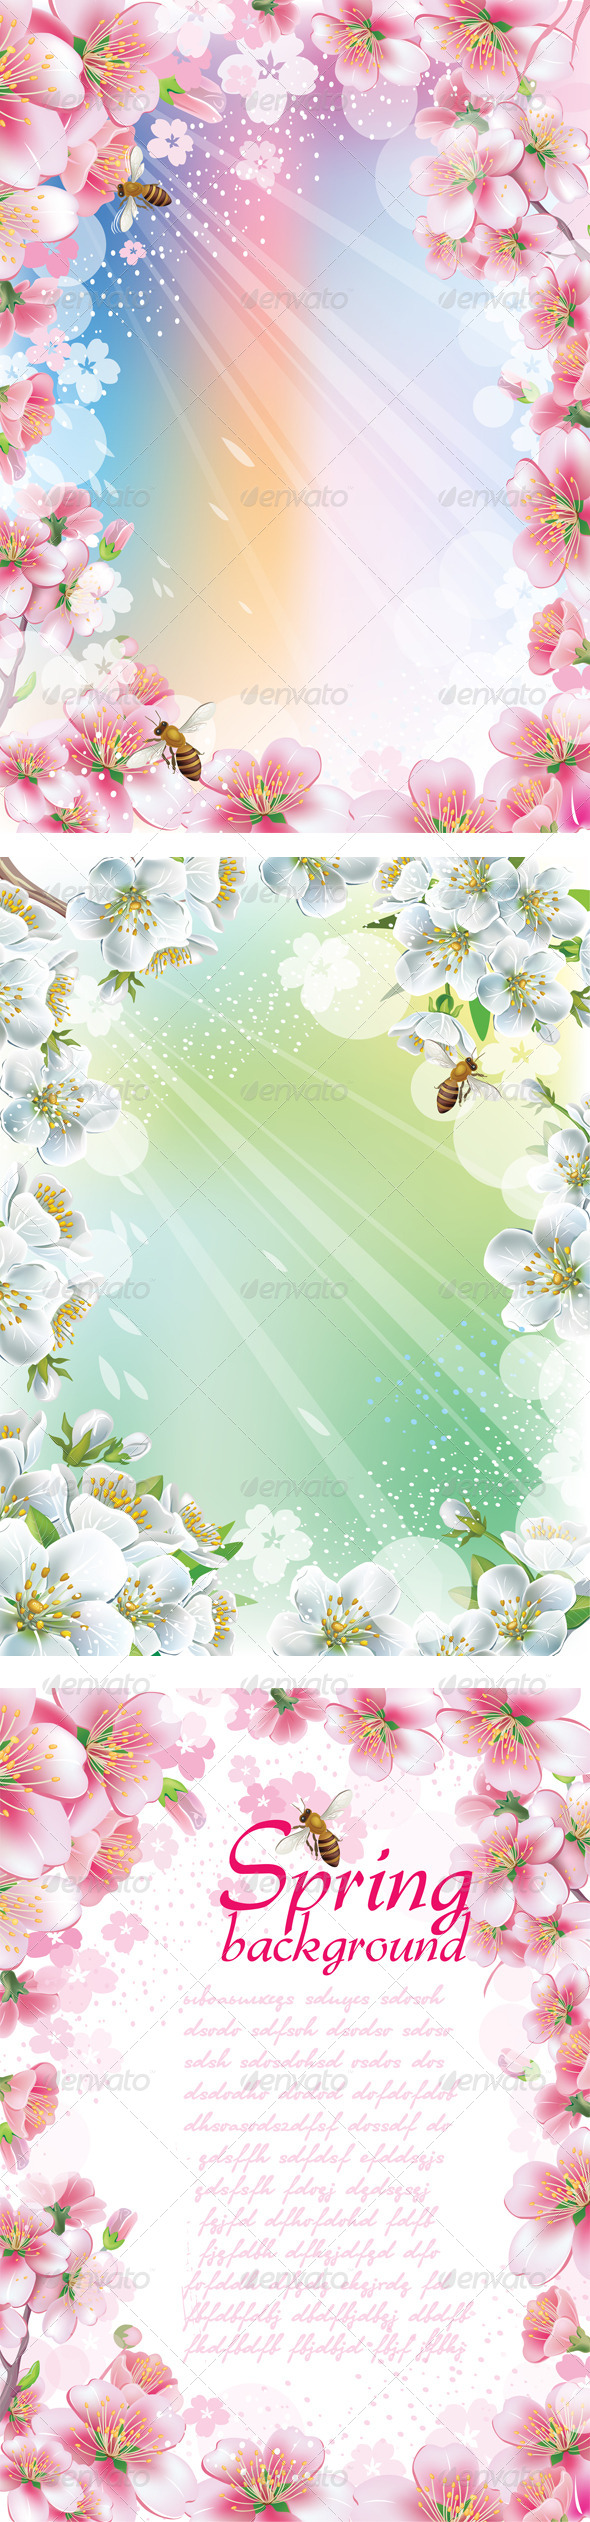 Set of Spring Backgrounds with Cherry Blossom - Seasons Nature